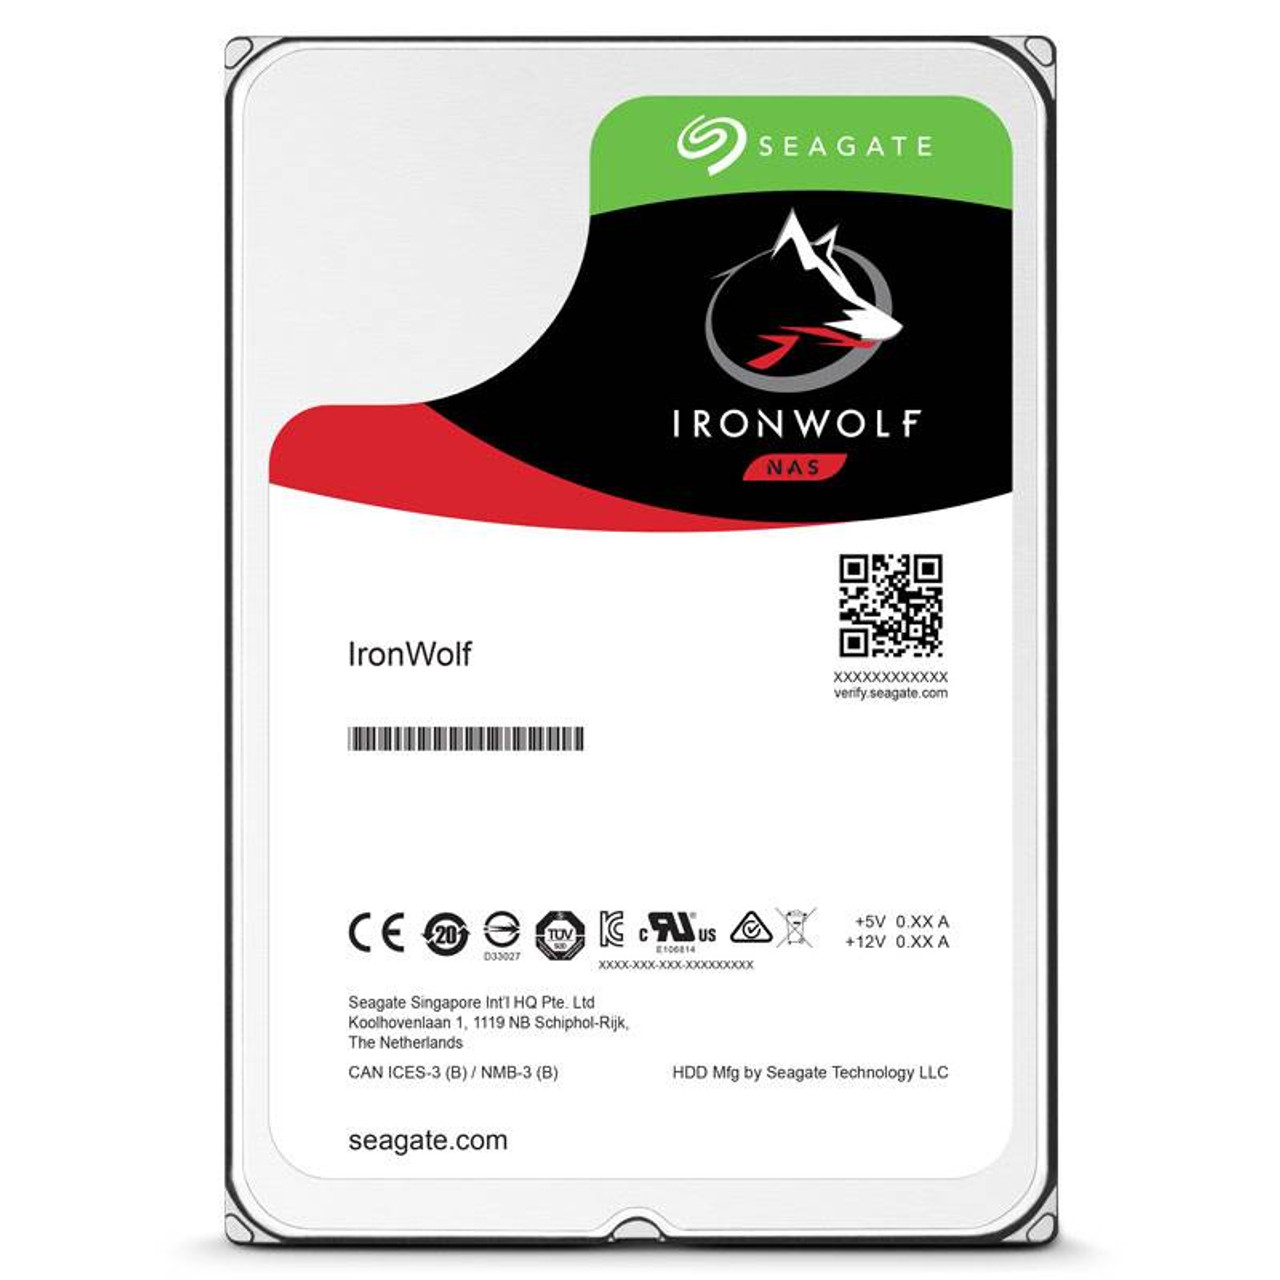 Product image for Seagate 1TB IronWolf NAS Hard Drive | CX Computer Superstore